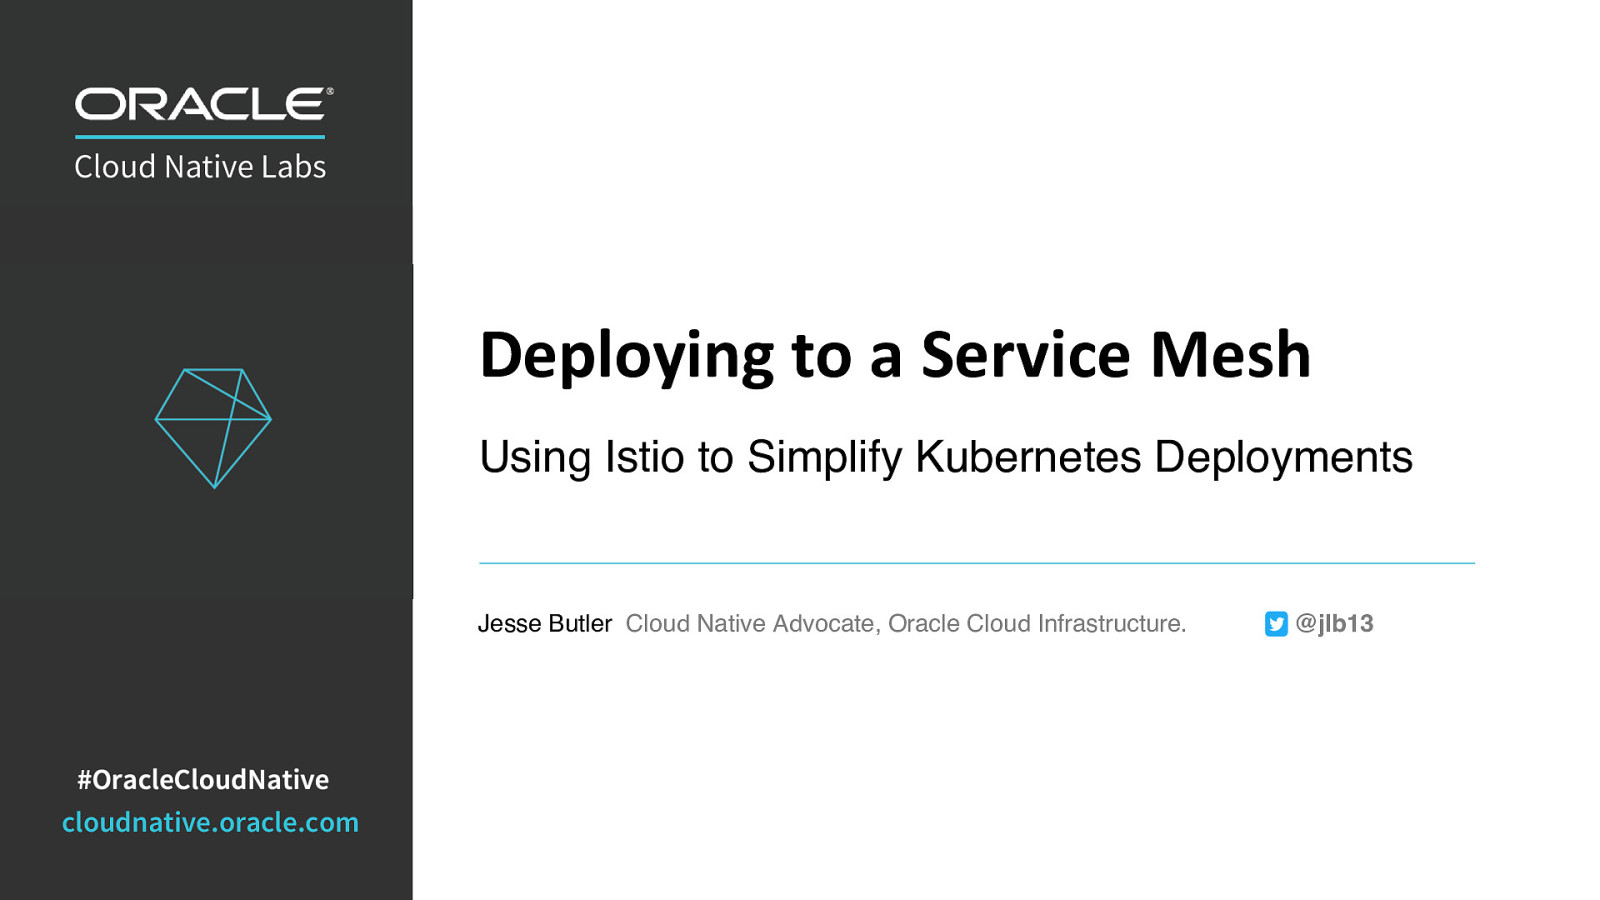 Deploying to a Service Mesh